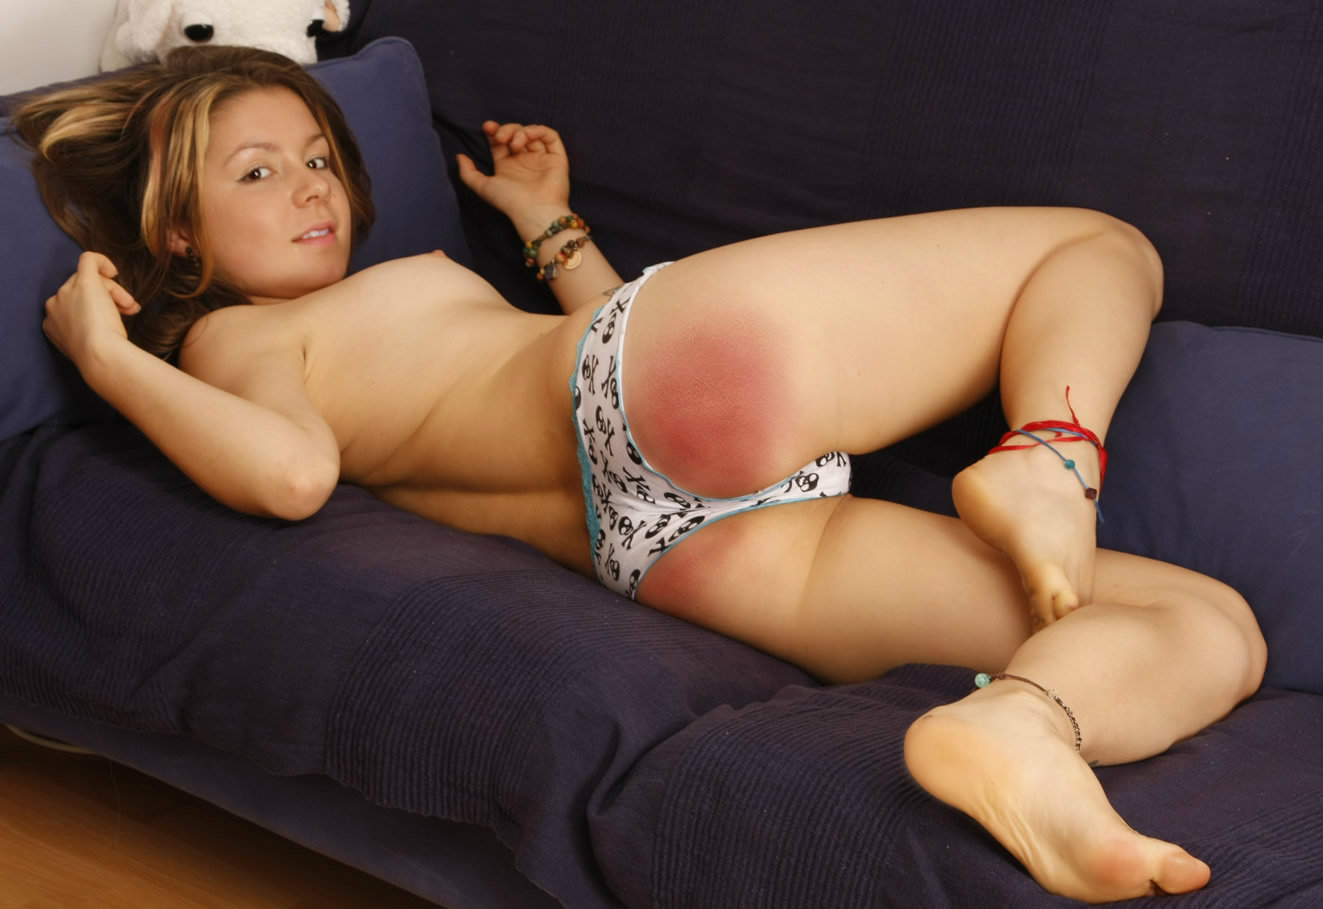 Teen Girl Spanked